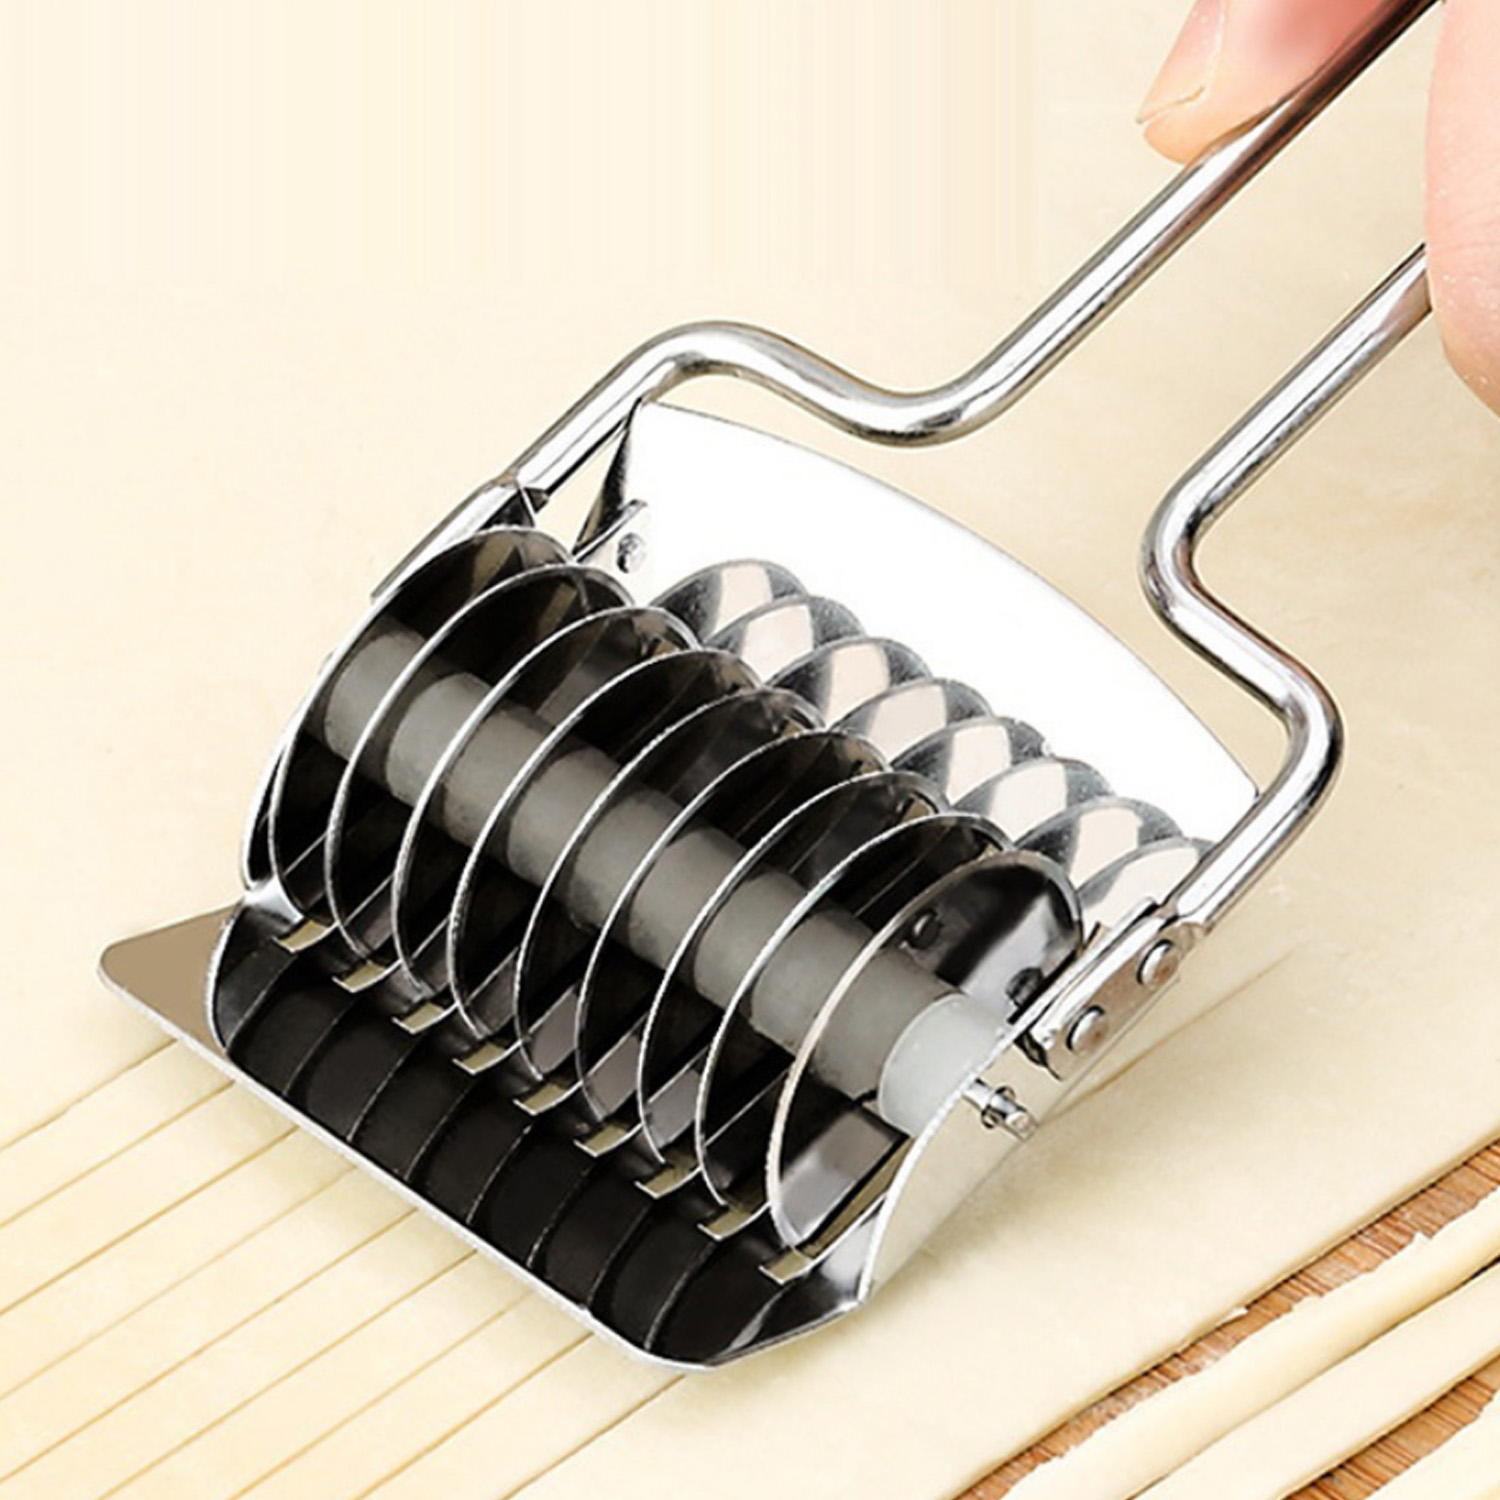 Behogar Manual Stainless Steel Noodle Lattice Roller Maker Cutter Kitchen Cooking Tools for Pasta Spaghetti Dough Garlic Onion image